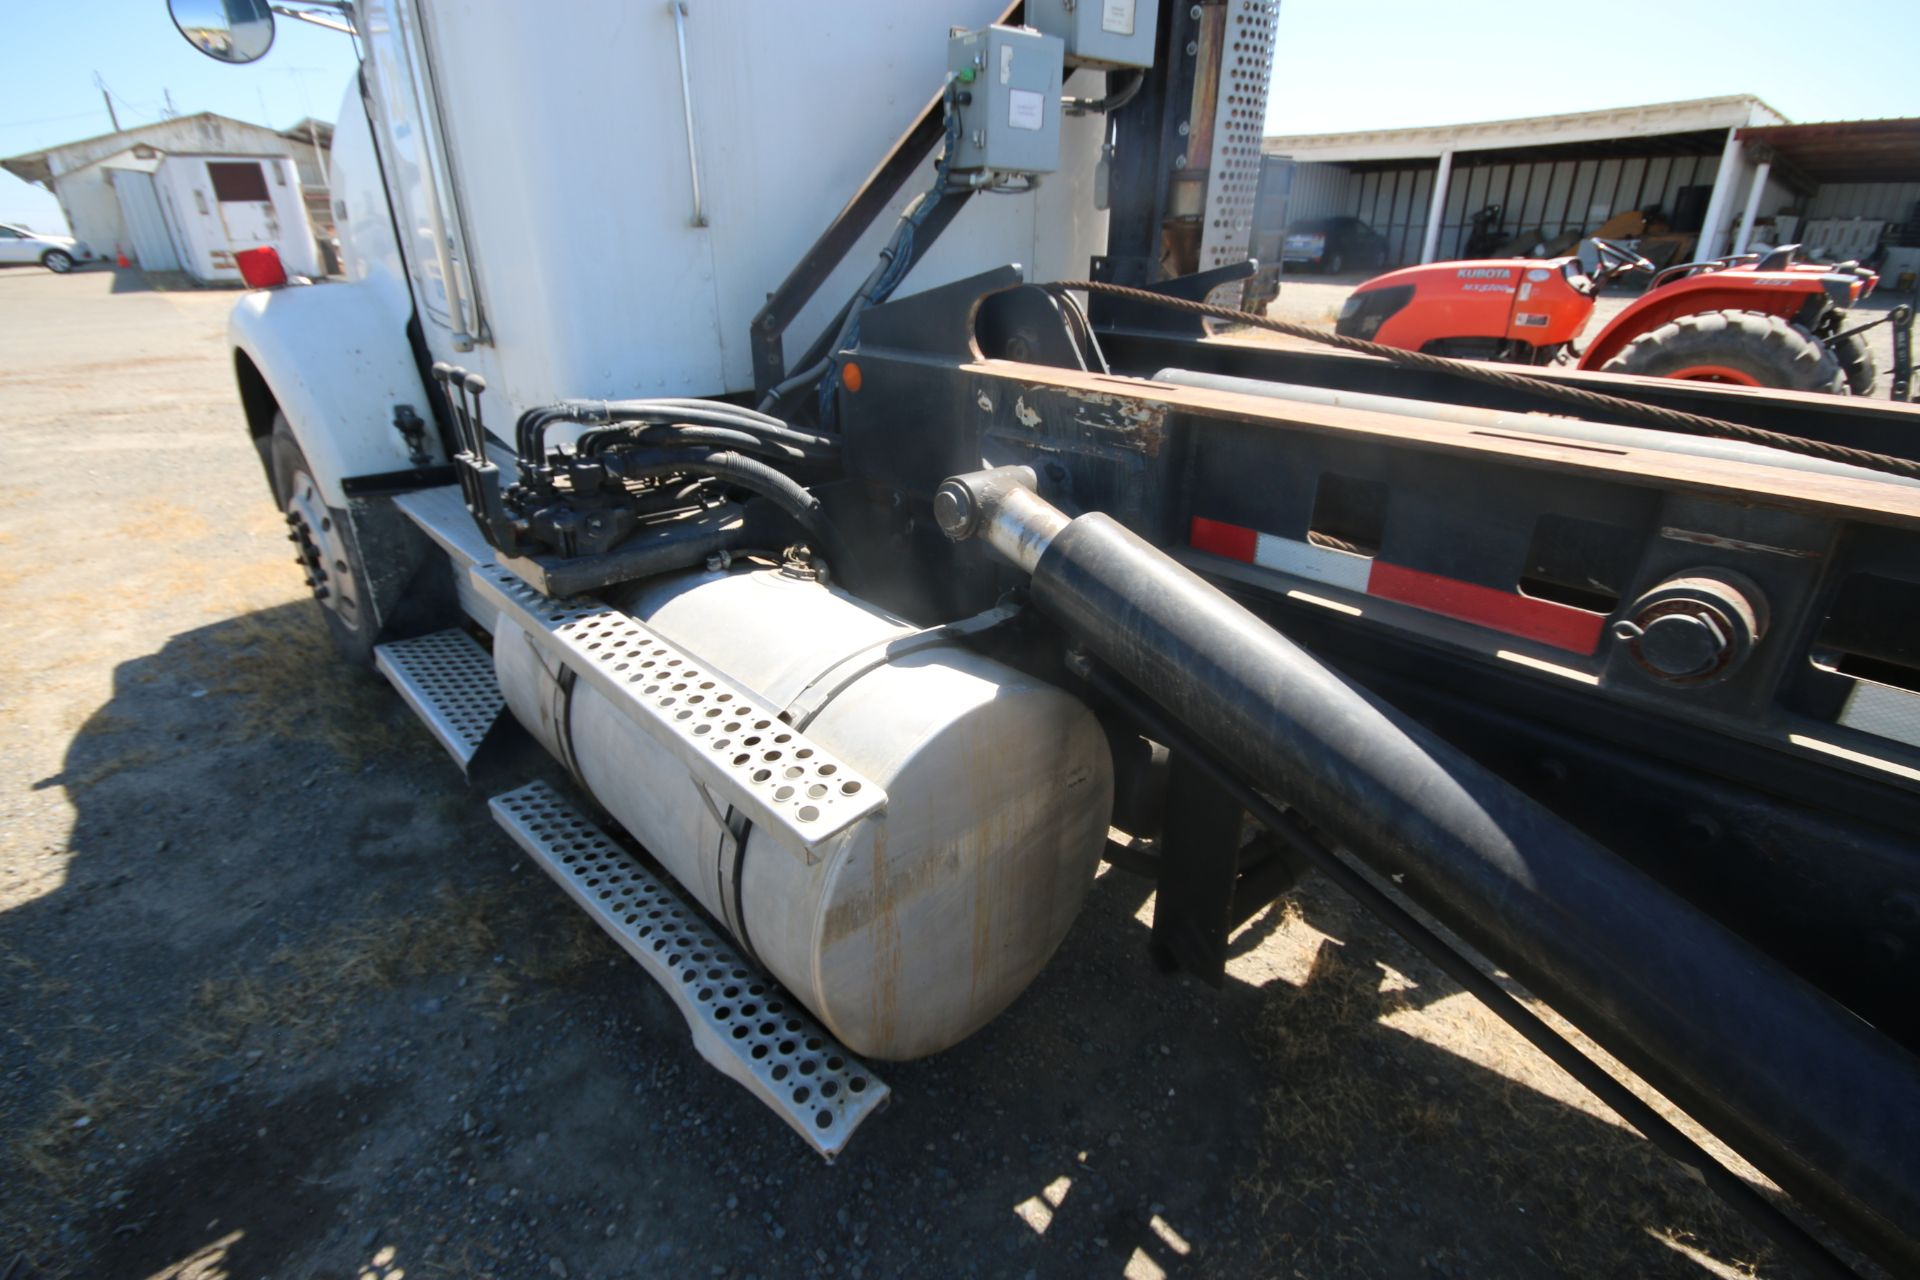 1996 Kenworth 3-Axle Roll-Off Straight Truck, VIN #: 1XKDDB9XOTS687107, with 24,722 Miles, License - Image 11 of 30